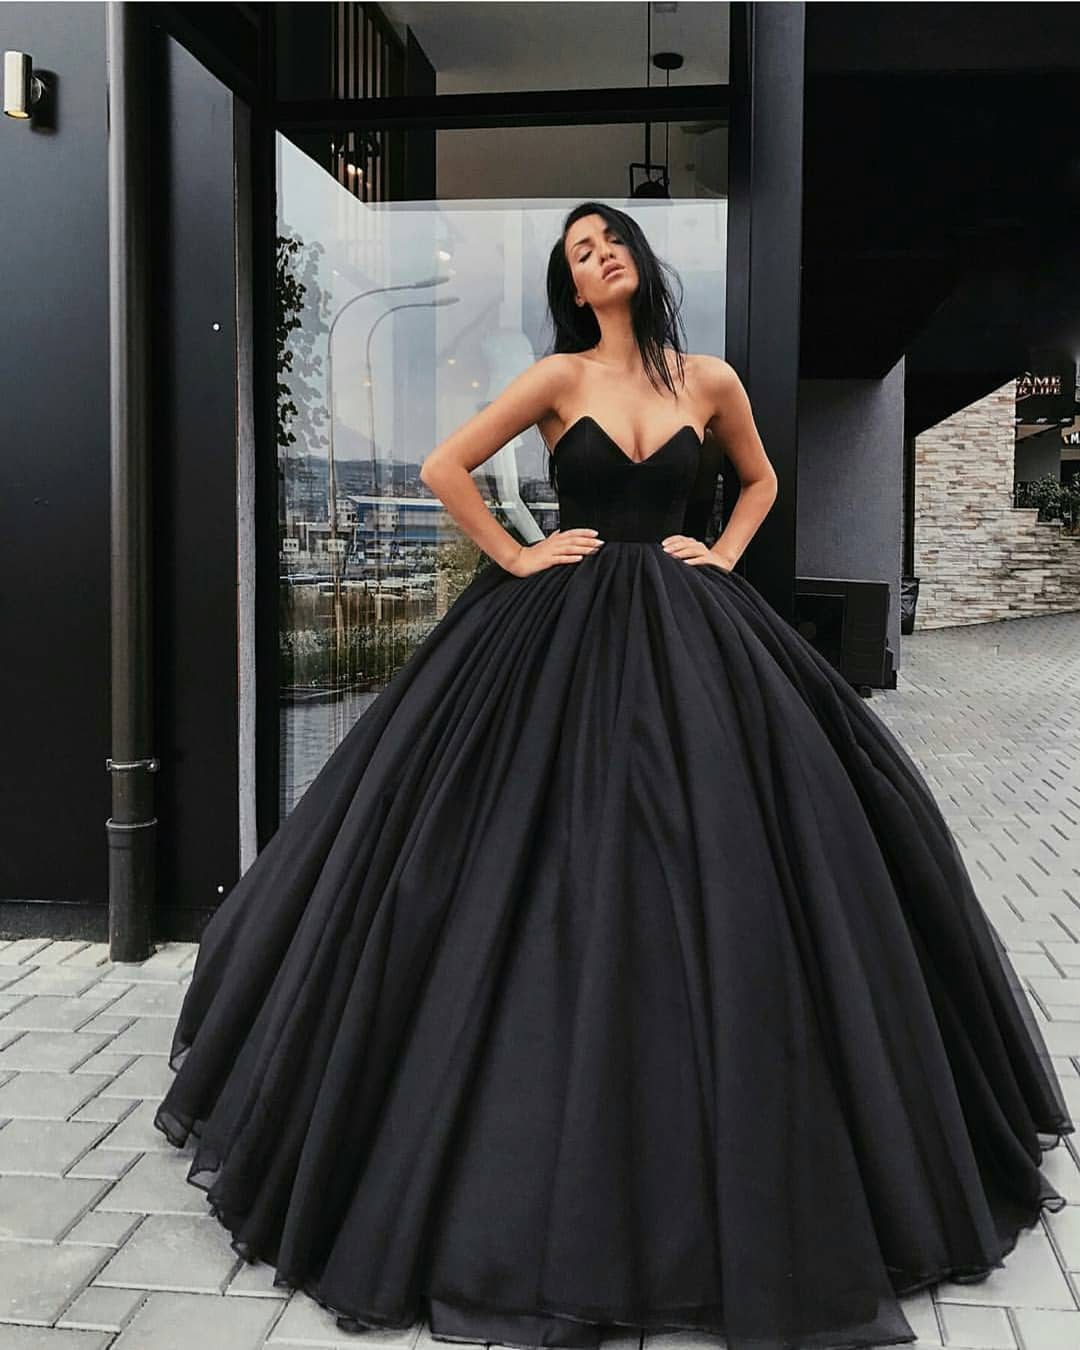 Black Ball Gown Prom Dress V Neck Strapless Floor Length Plus Size Formal Evening Dresses Long Party Gowns